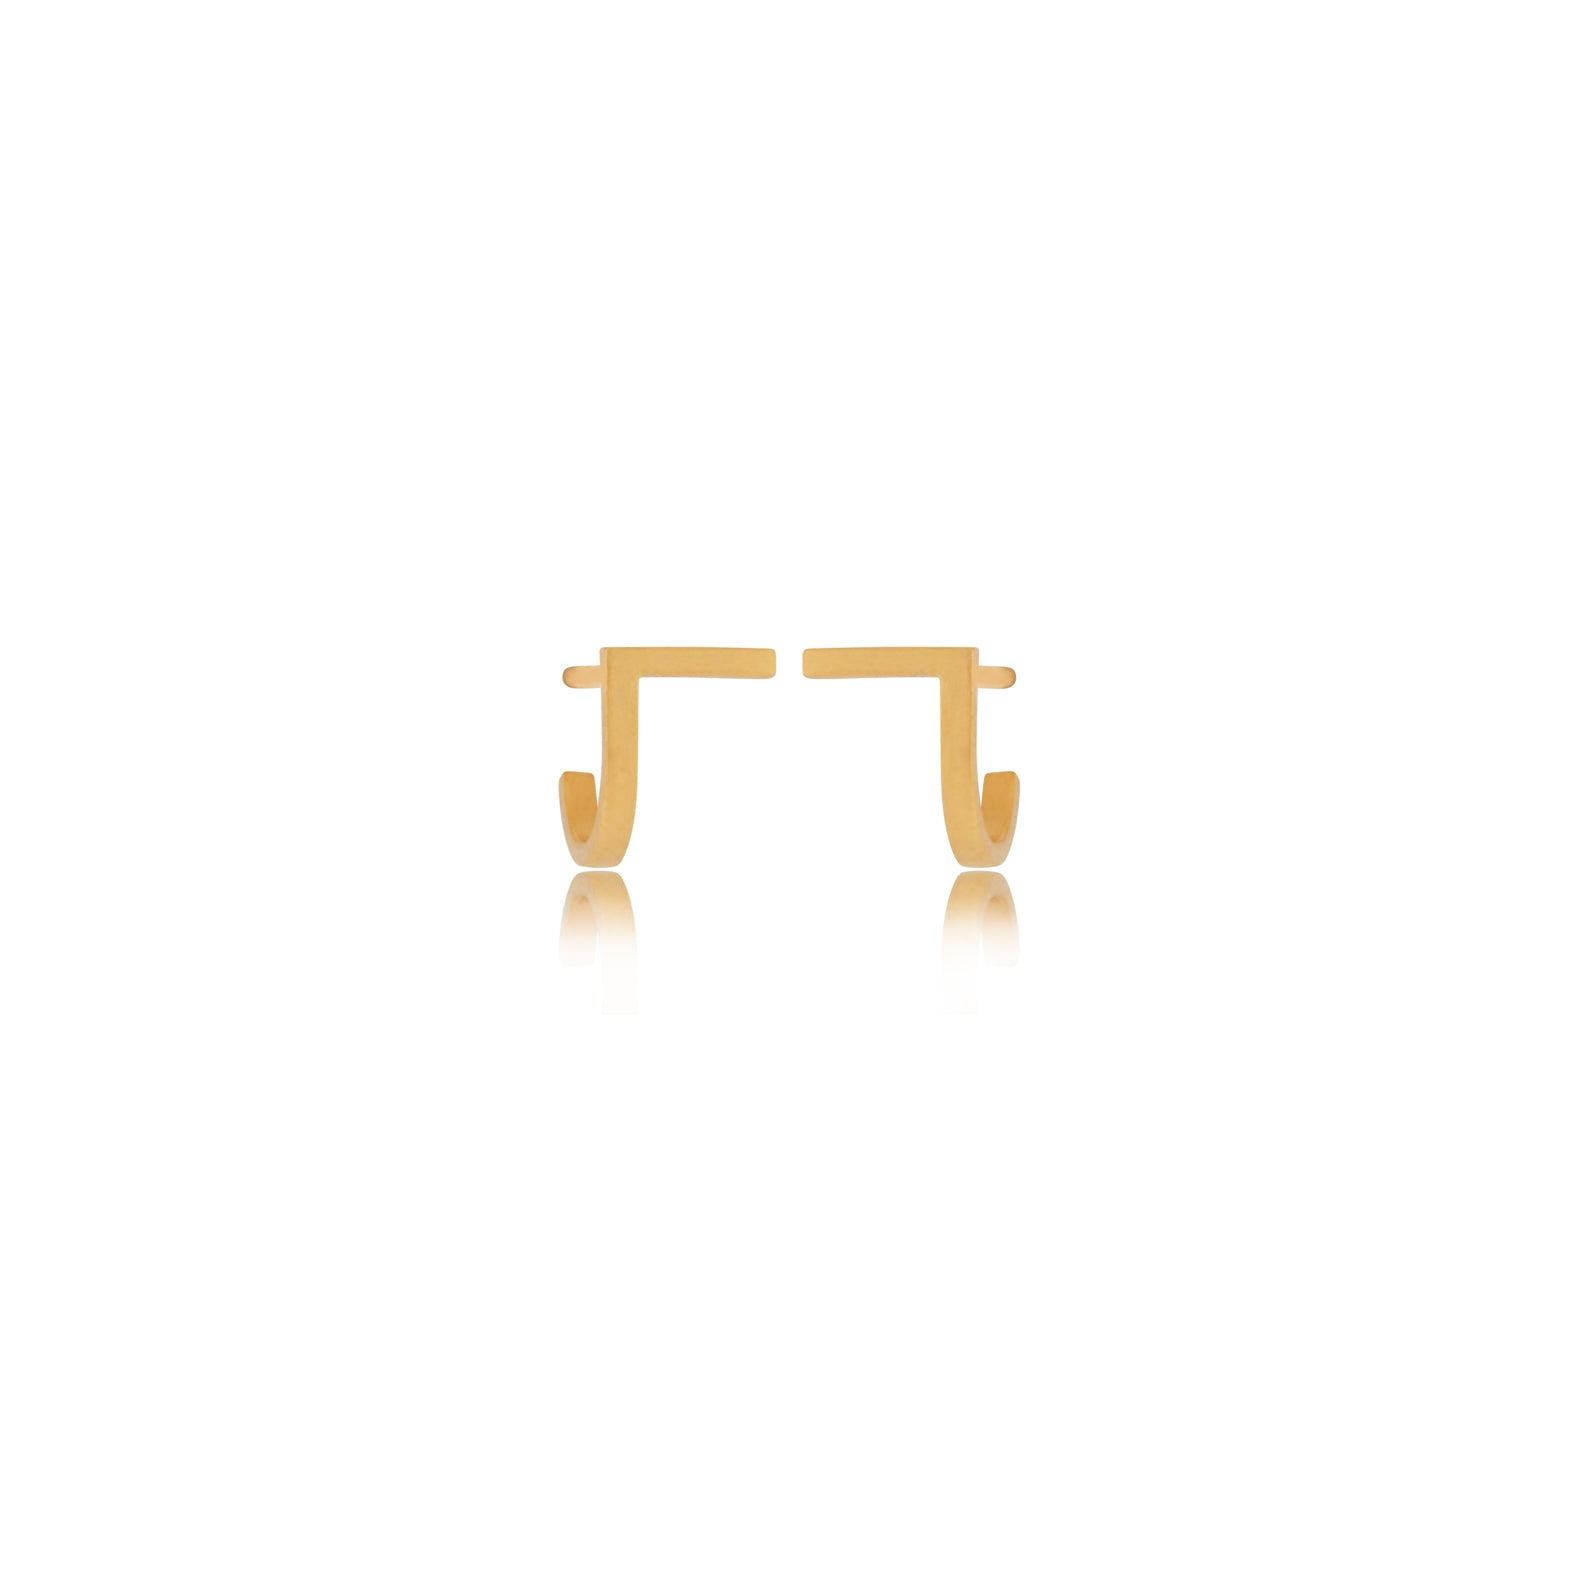 Unfinishing Line Curve Gold Earrings/Small